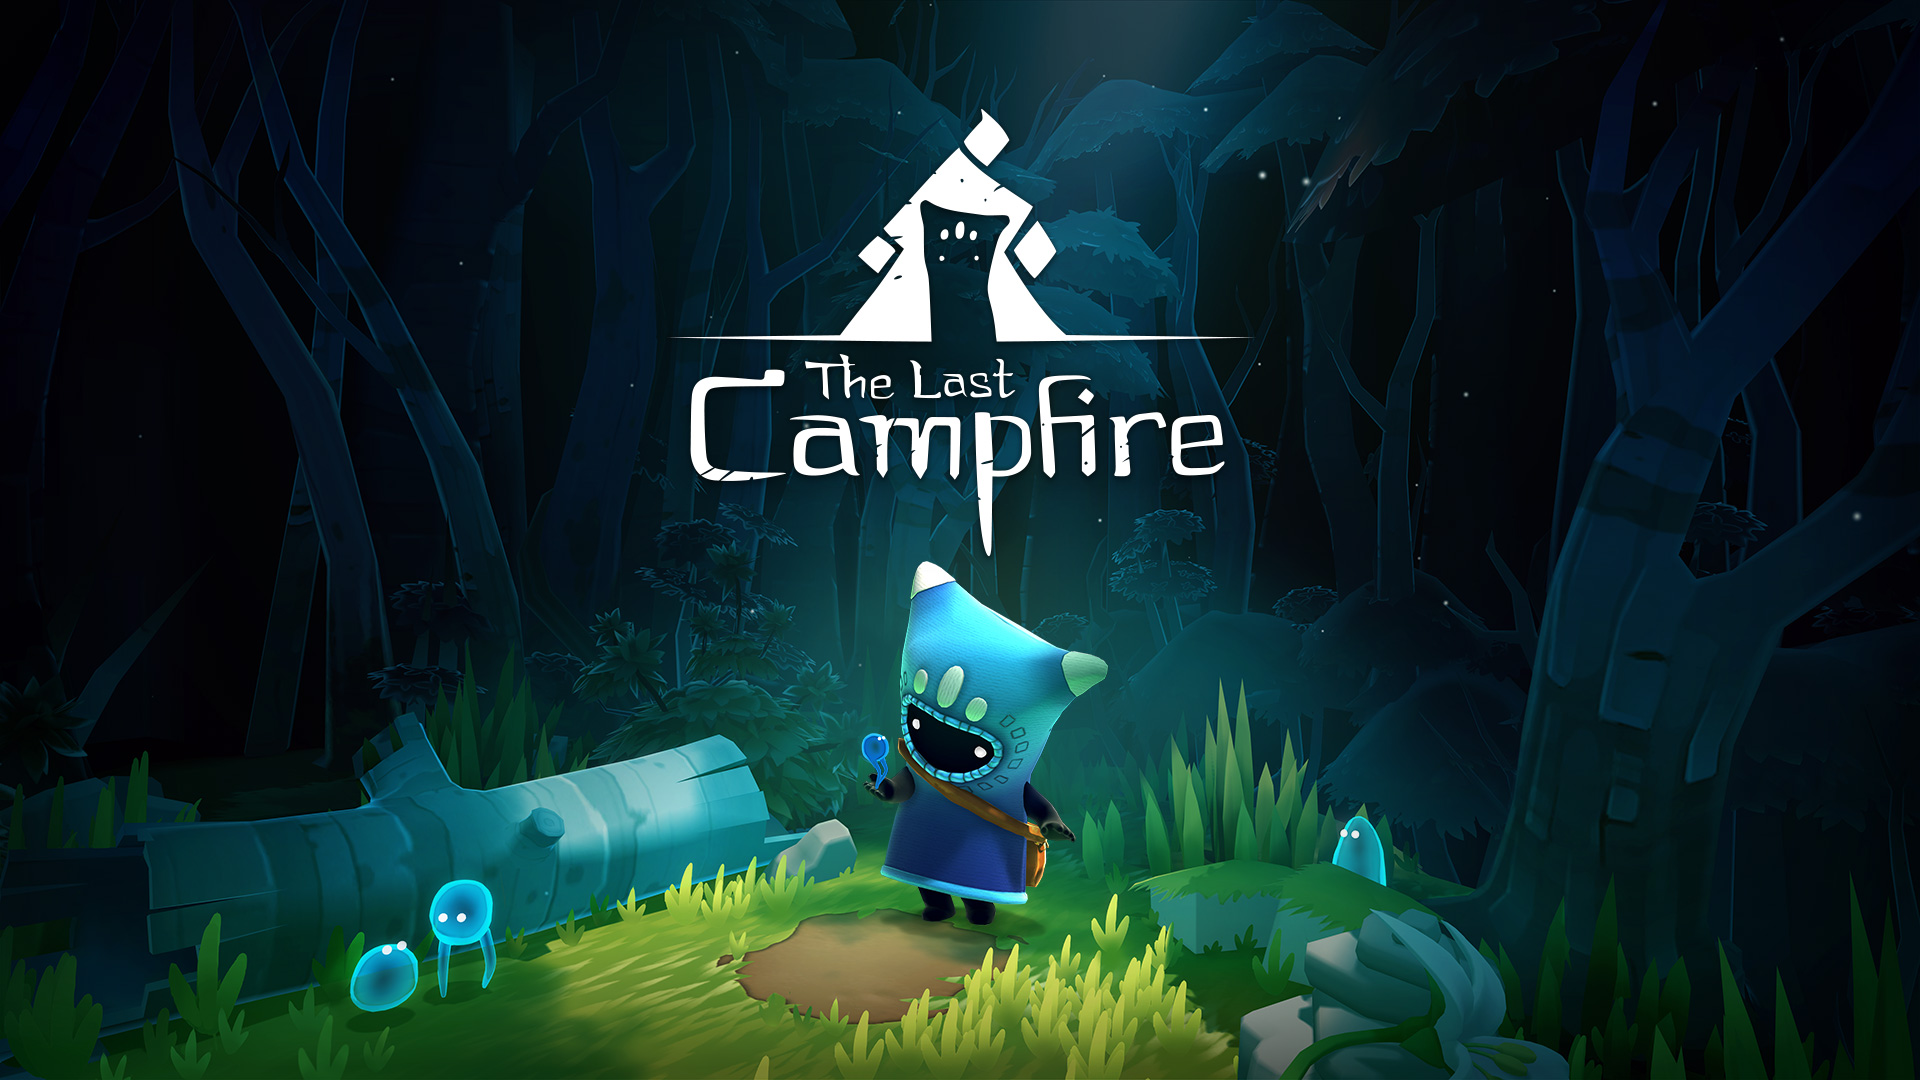 Video For The Last Campfire, from Developer Hello Games, is Available Now on Xbox One